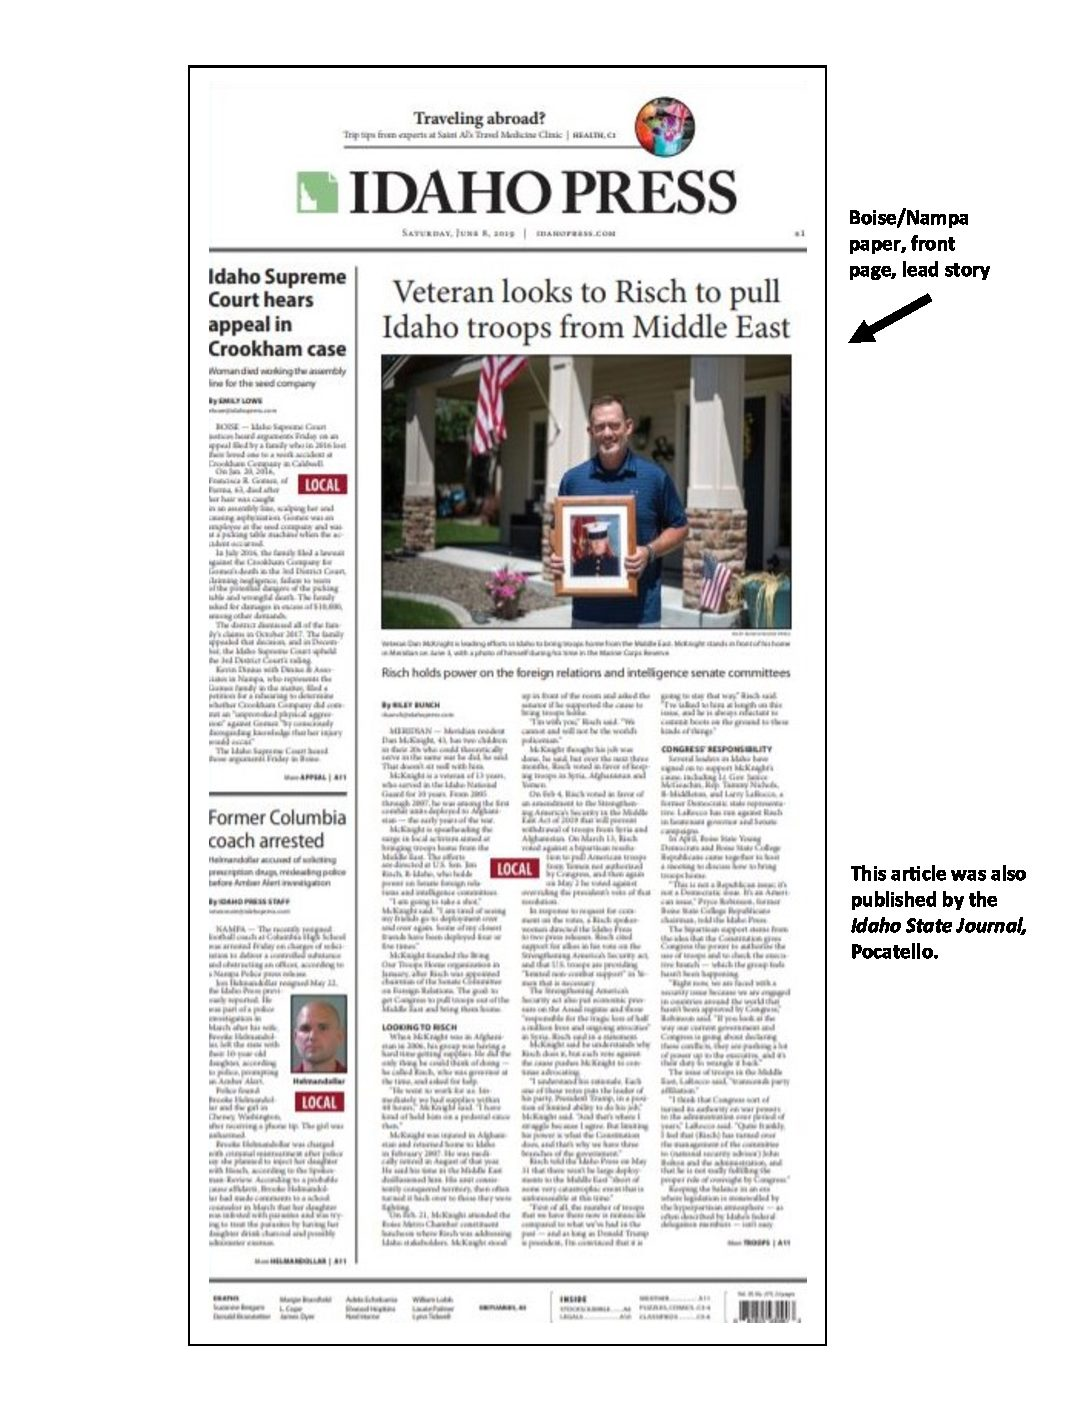 Idaho Press front page – Veteran looks to Risch to pull Idaho troops from Middle East